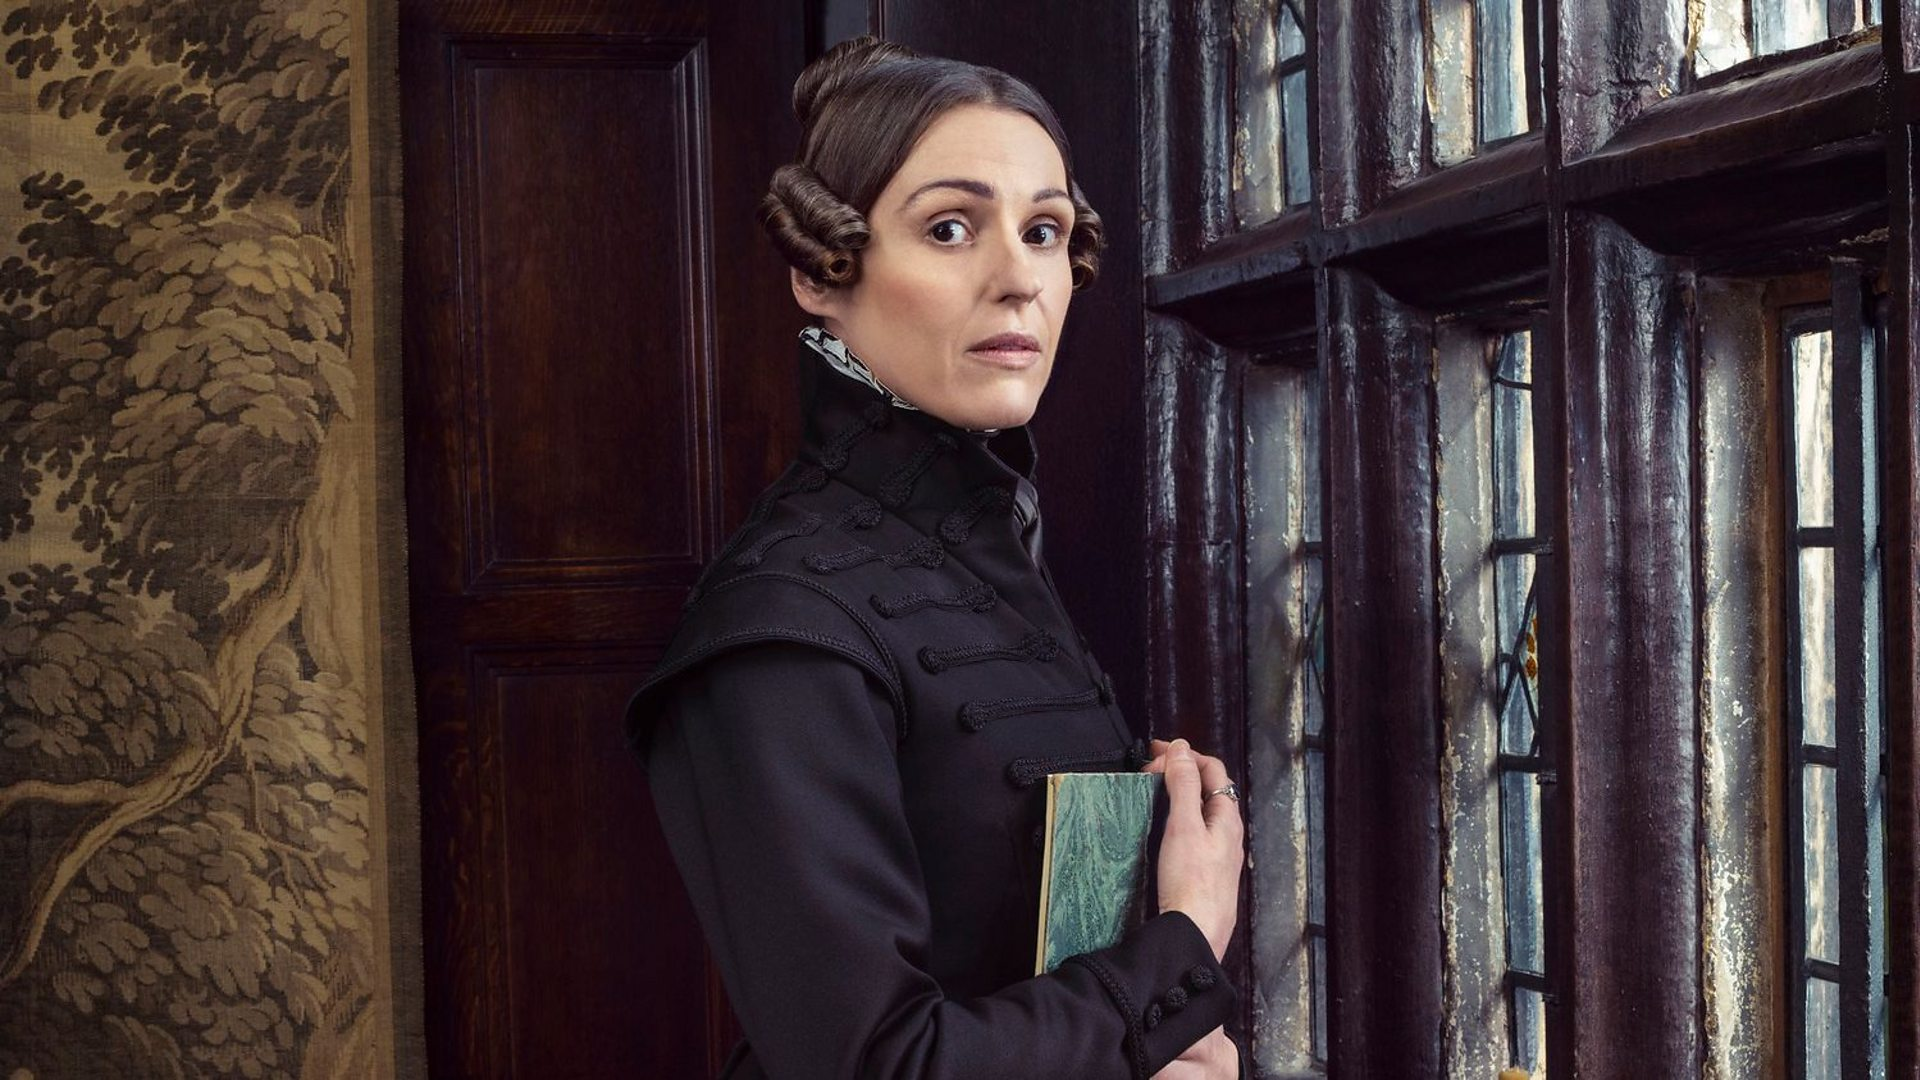 BBC One - Gentleman Jack - The Real Diaries of Anne Lister